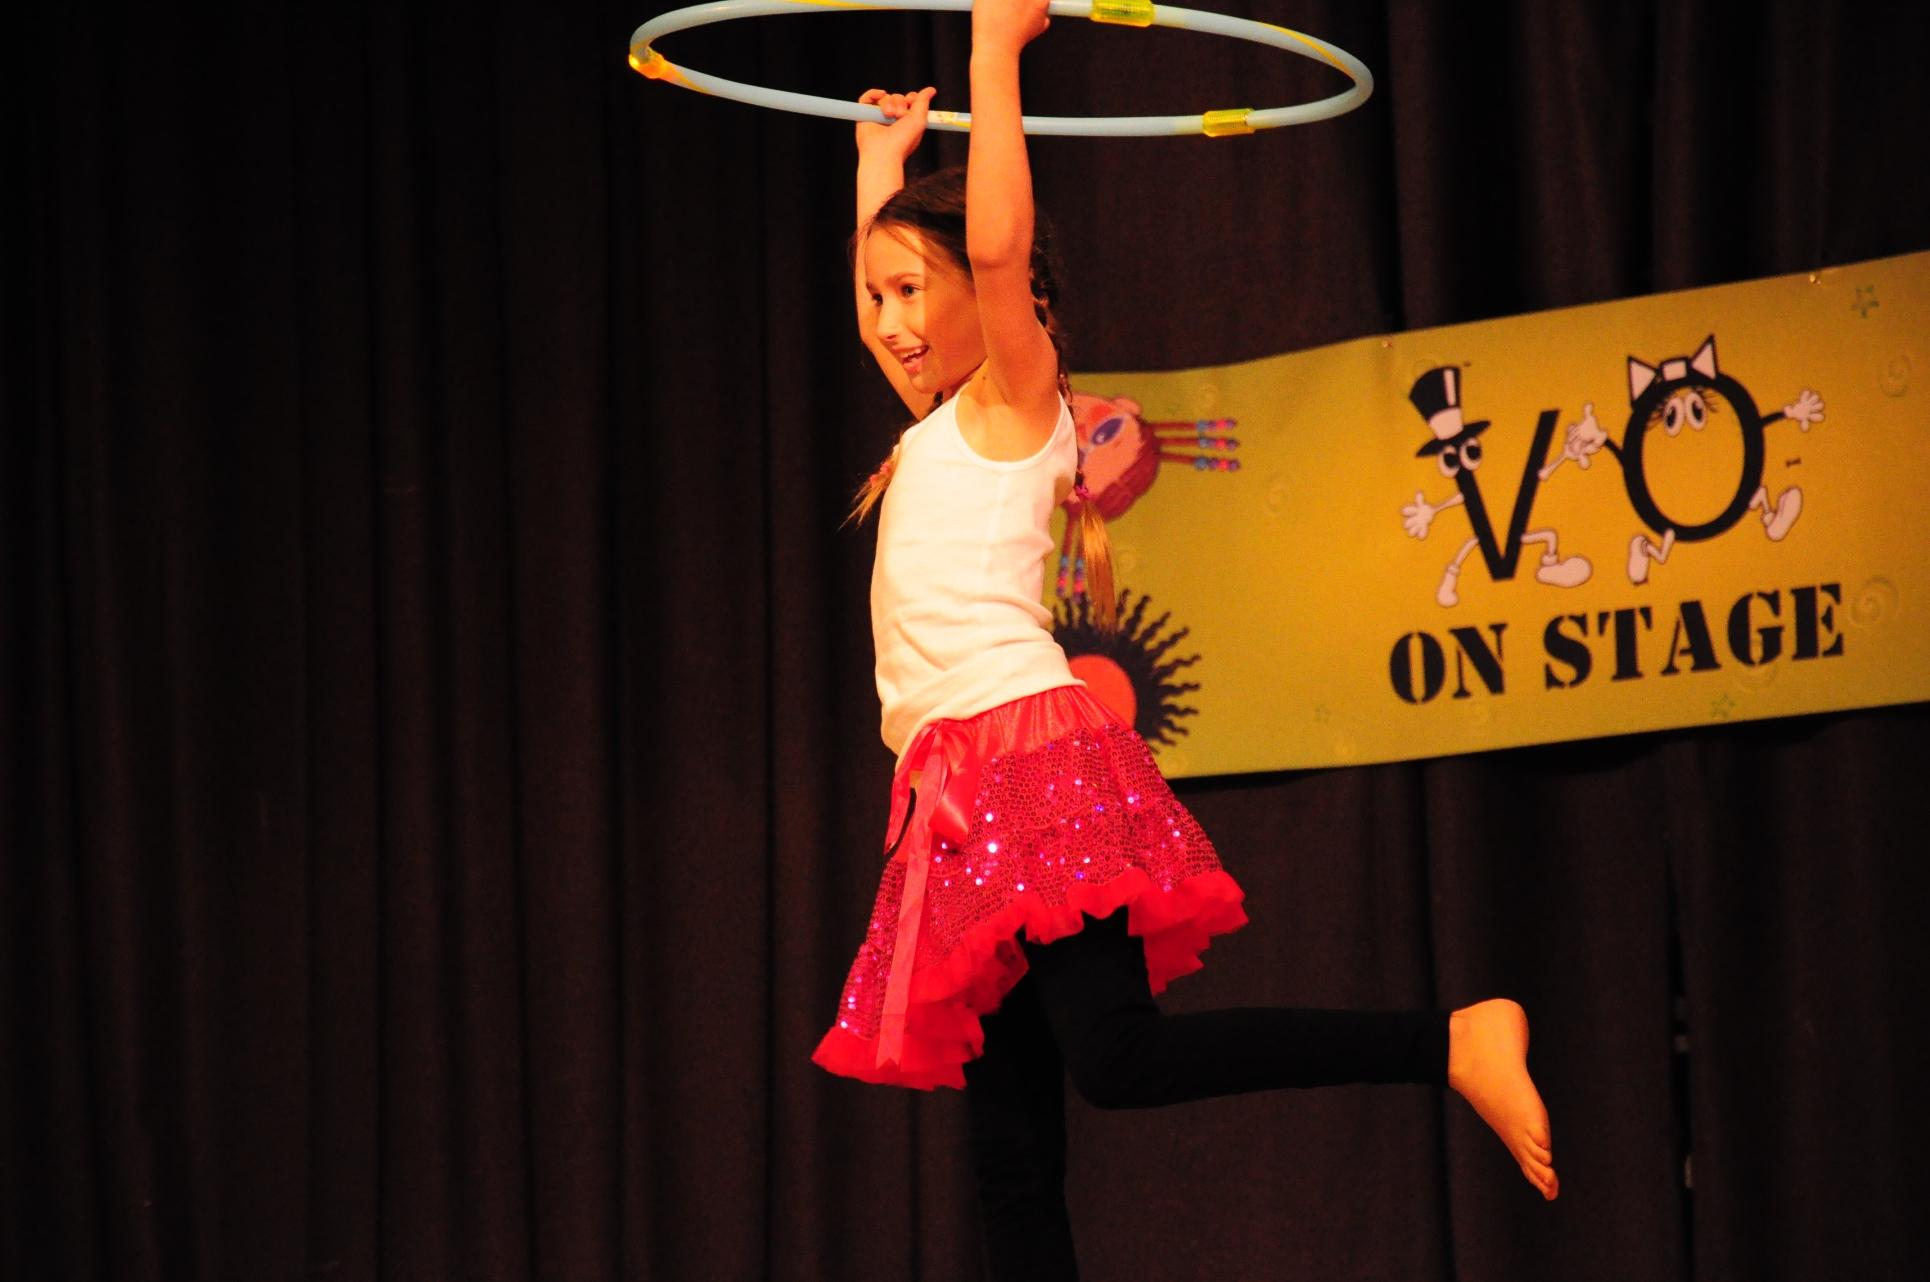 V-O on Stage - A talent show, V-O style, featuring students performing music, dance, comedy and more.